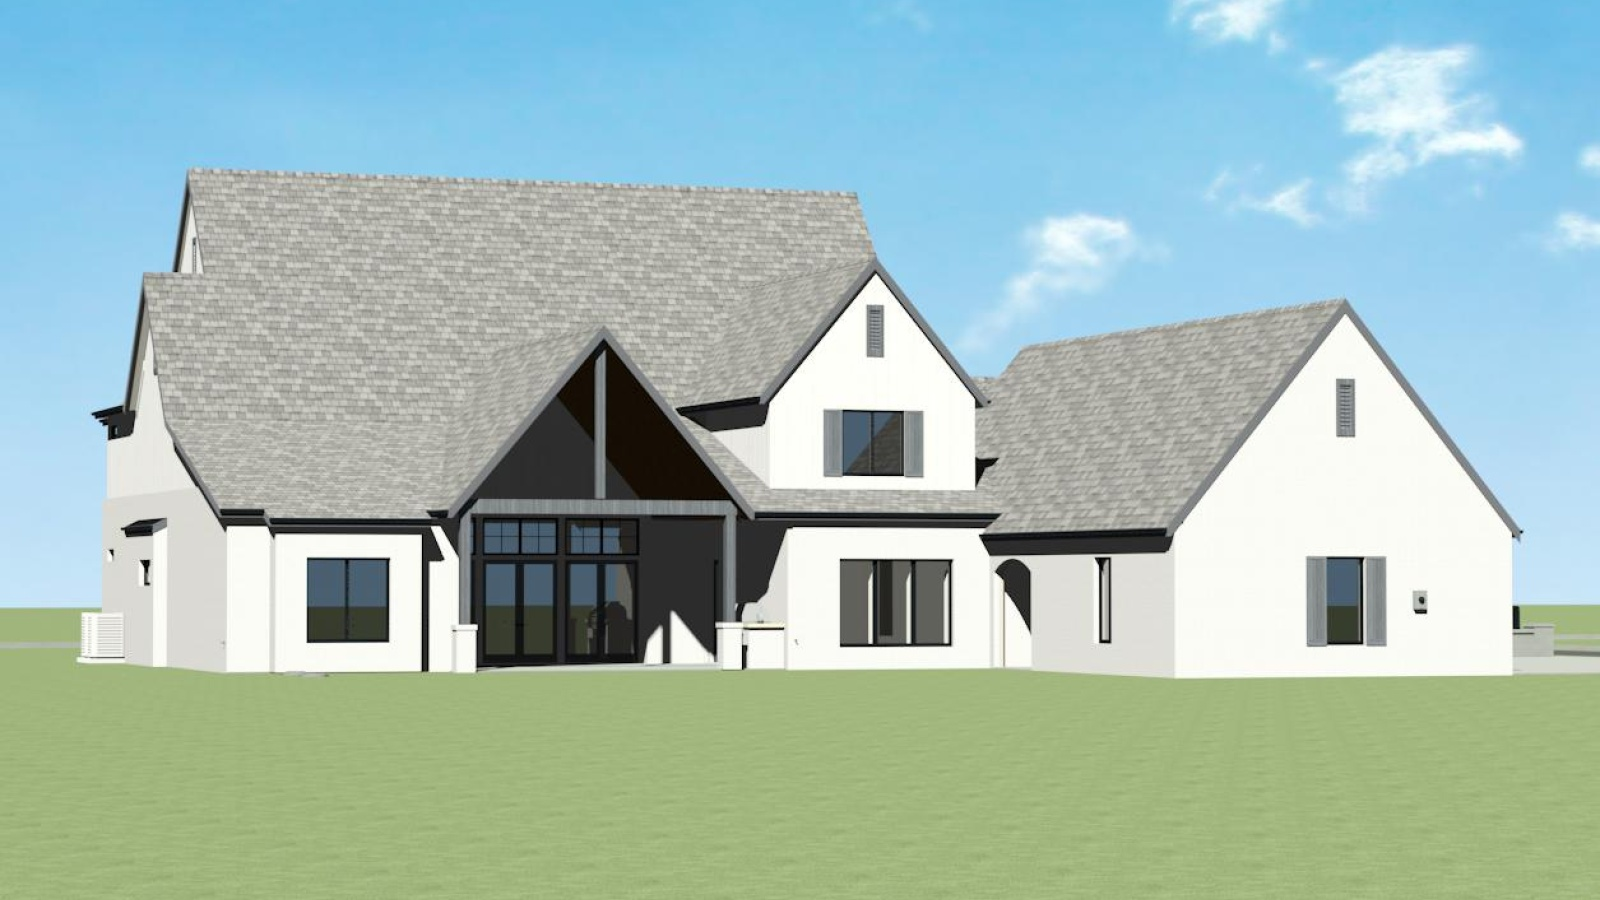 5 Bedrooms Bedrooms, ,4.5 BathroomsBathrooms,Custom Home,Home Plans,1095